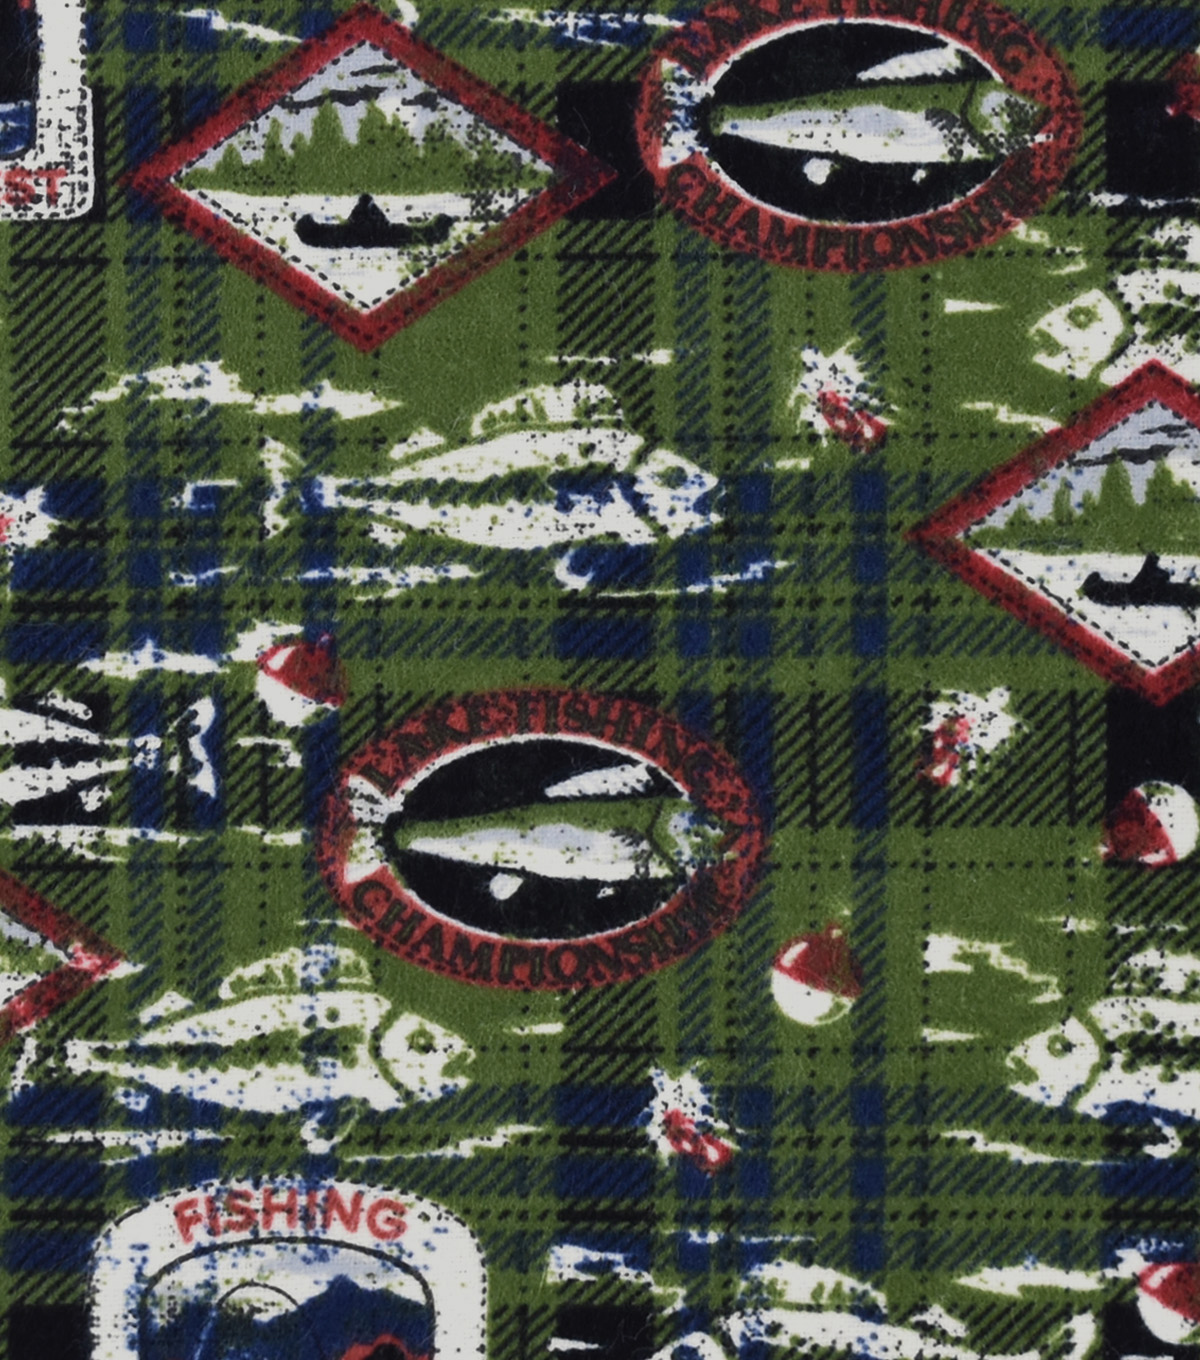 Snuggle Flannel Fabric 42\u0027\u0027-Fishing Patches on Plaid